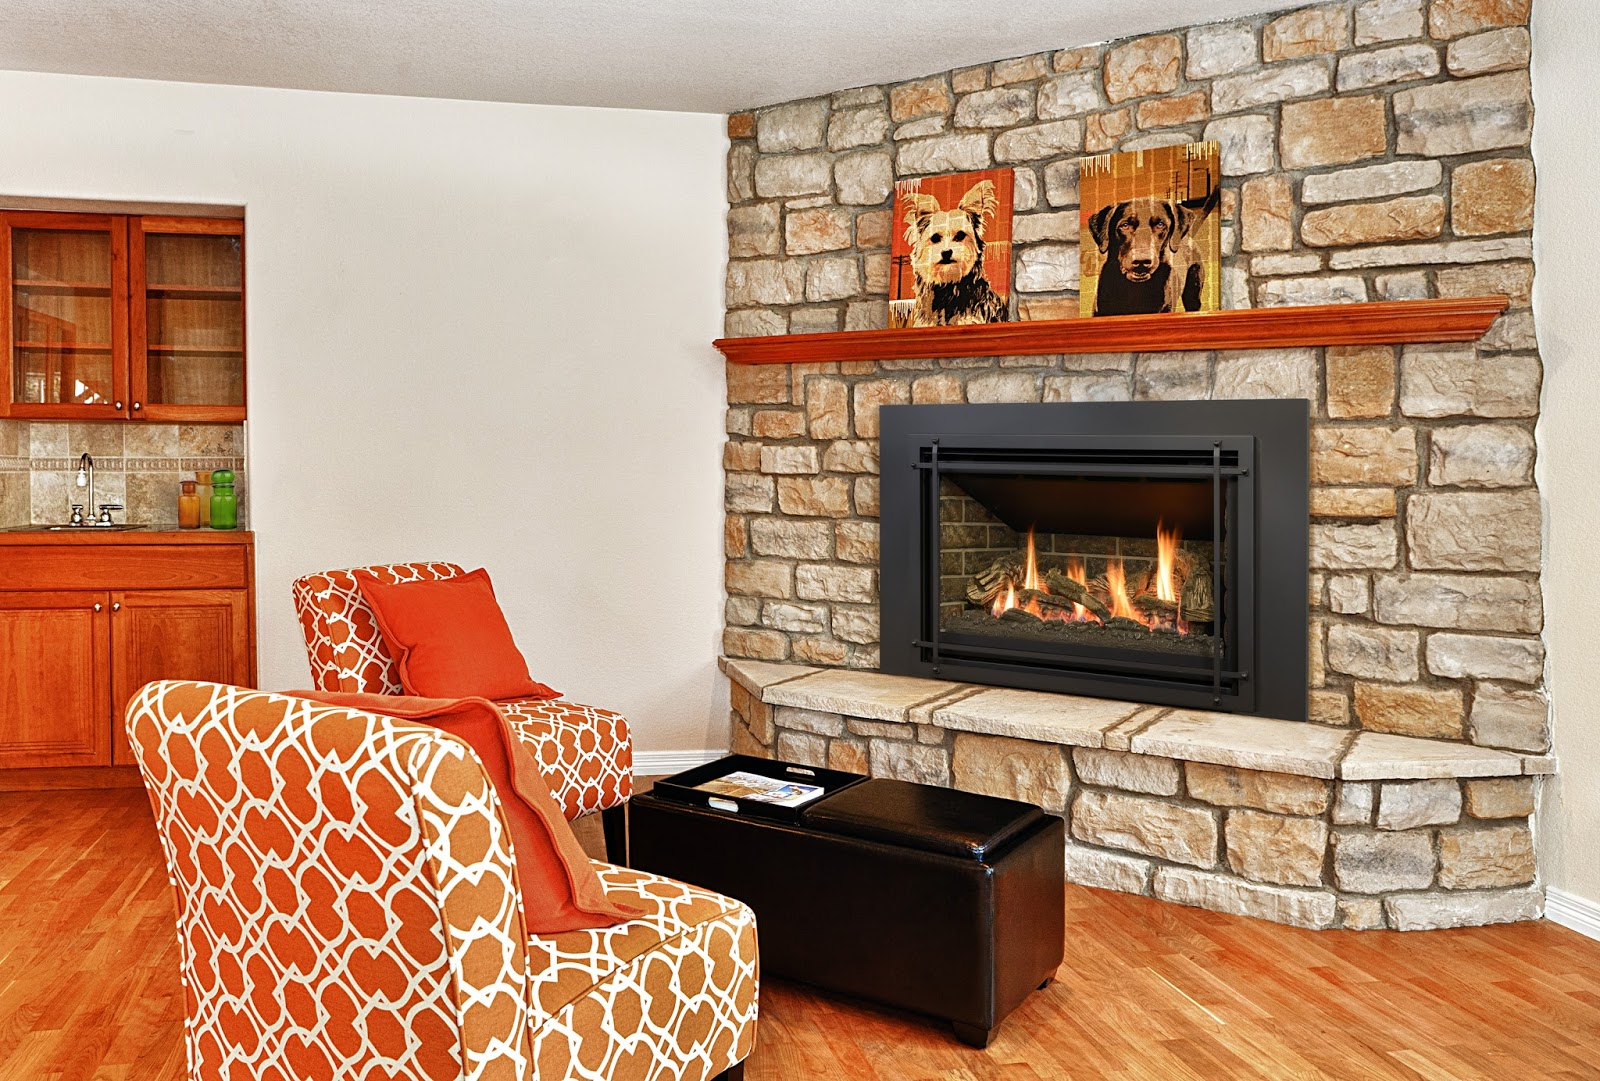 How Gas Fireplaces Work with an IPI vs. Milivolt Ignition System ...